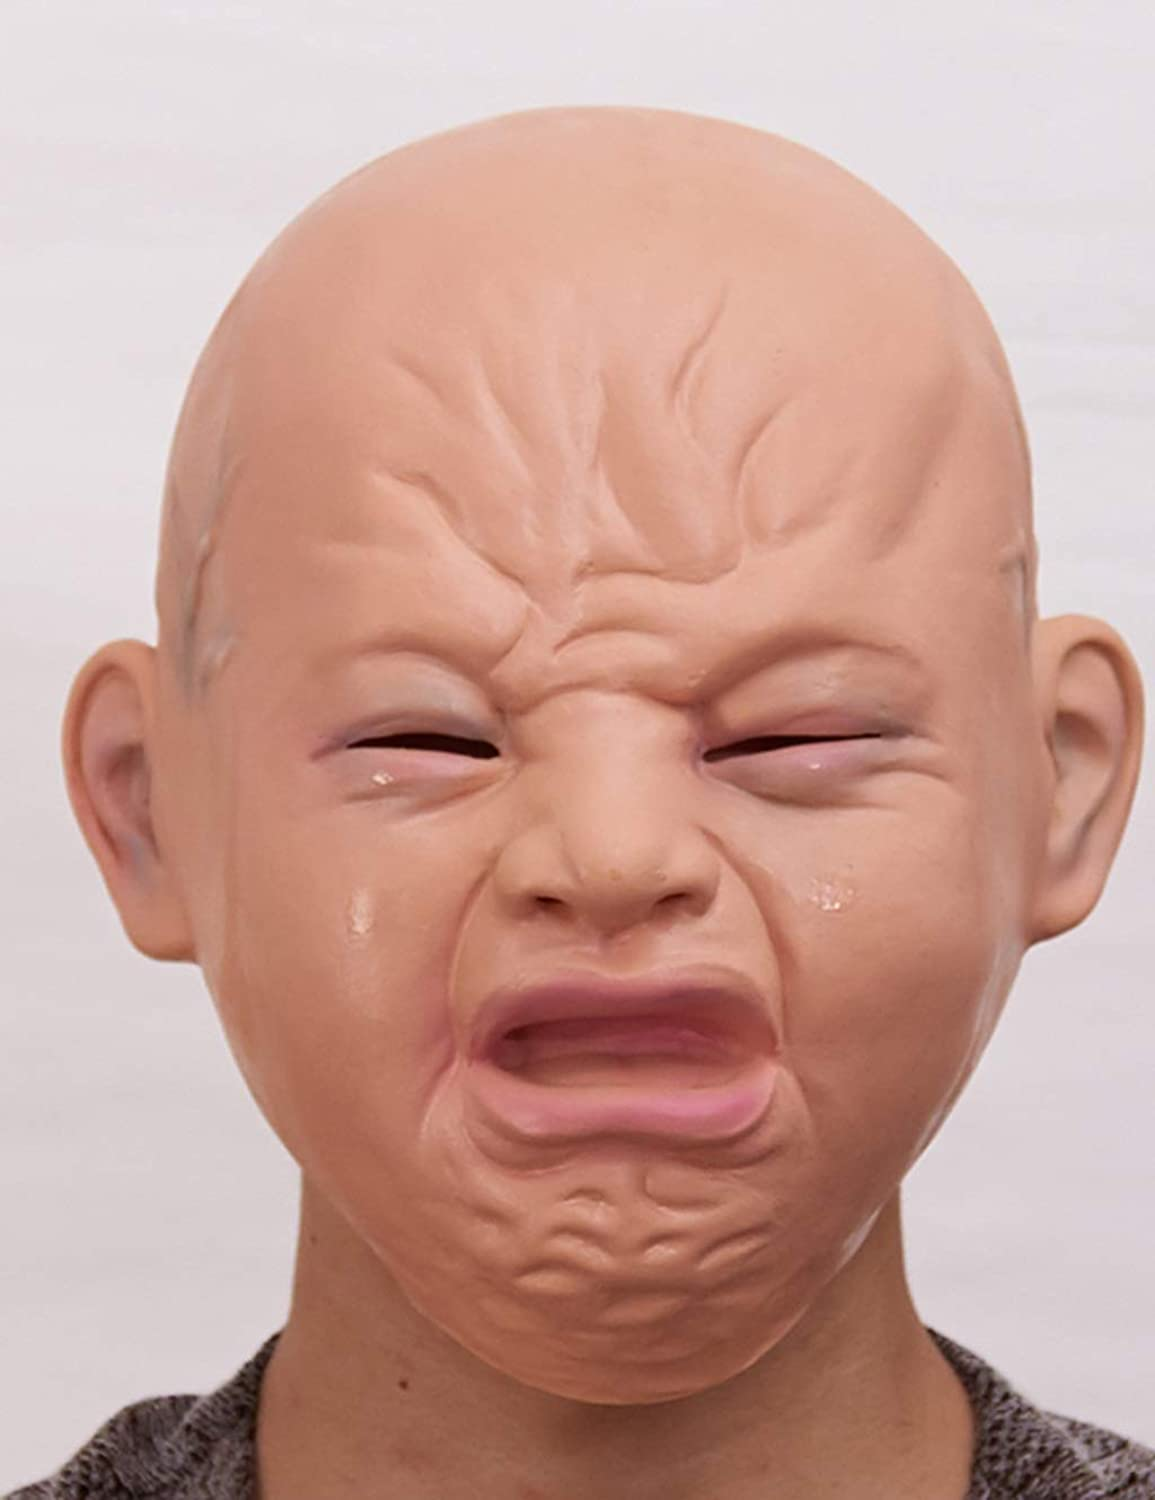 Latex Baby Mask Disgusting Smile Crying Baby Mask Full Head Halloween Masks Latex Horror For Carnival Accessories Carnaval Mask